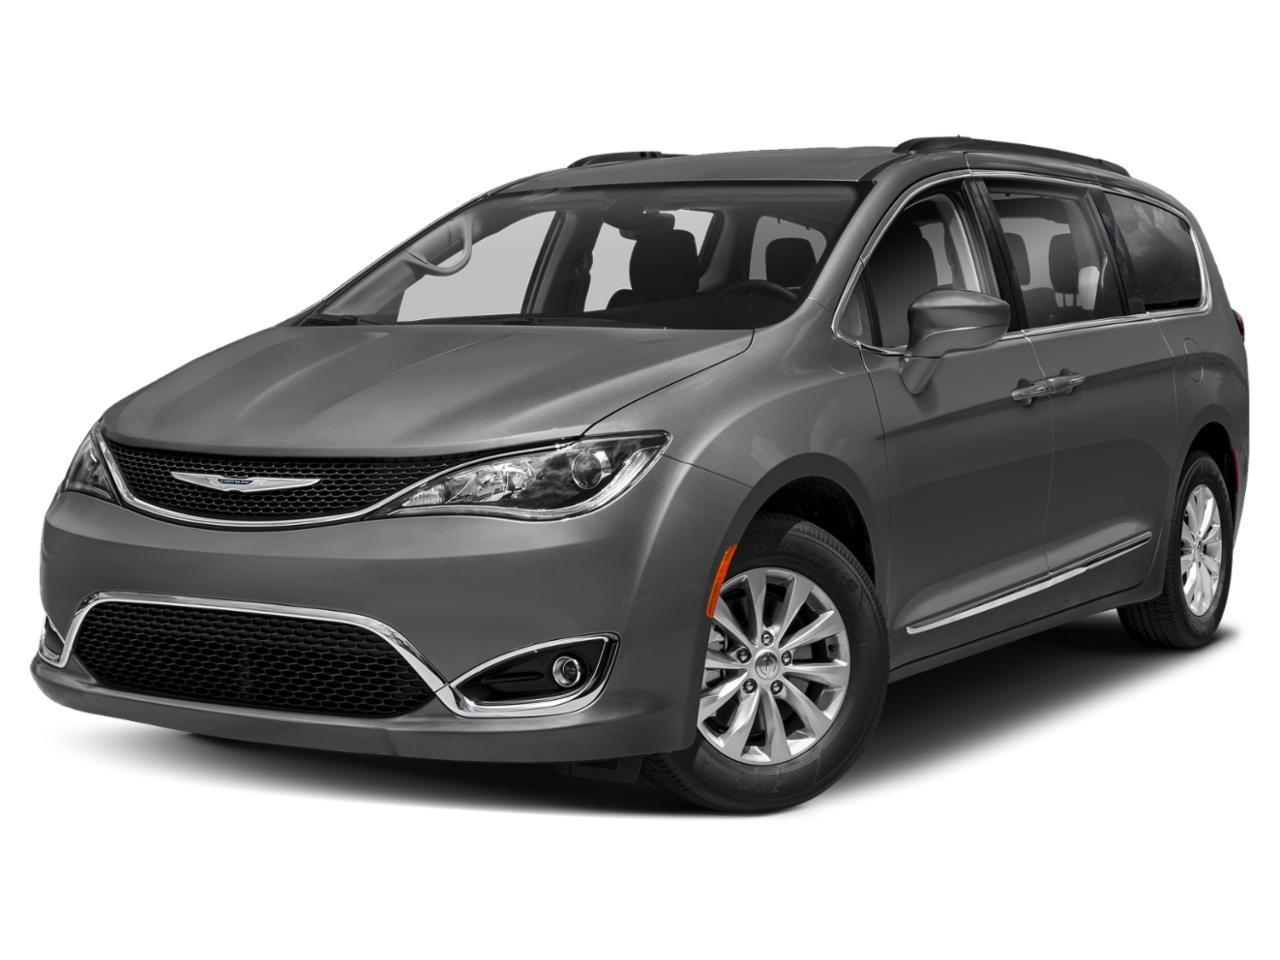 2020 Chrysler Pacifica Vehicle Photo in Oshkosh, WI 54901